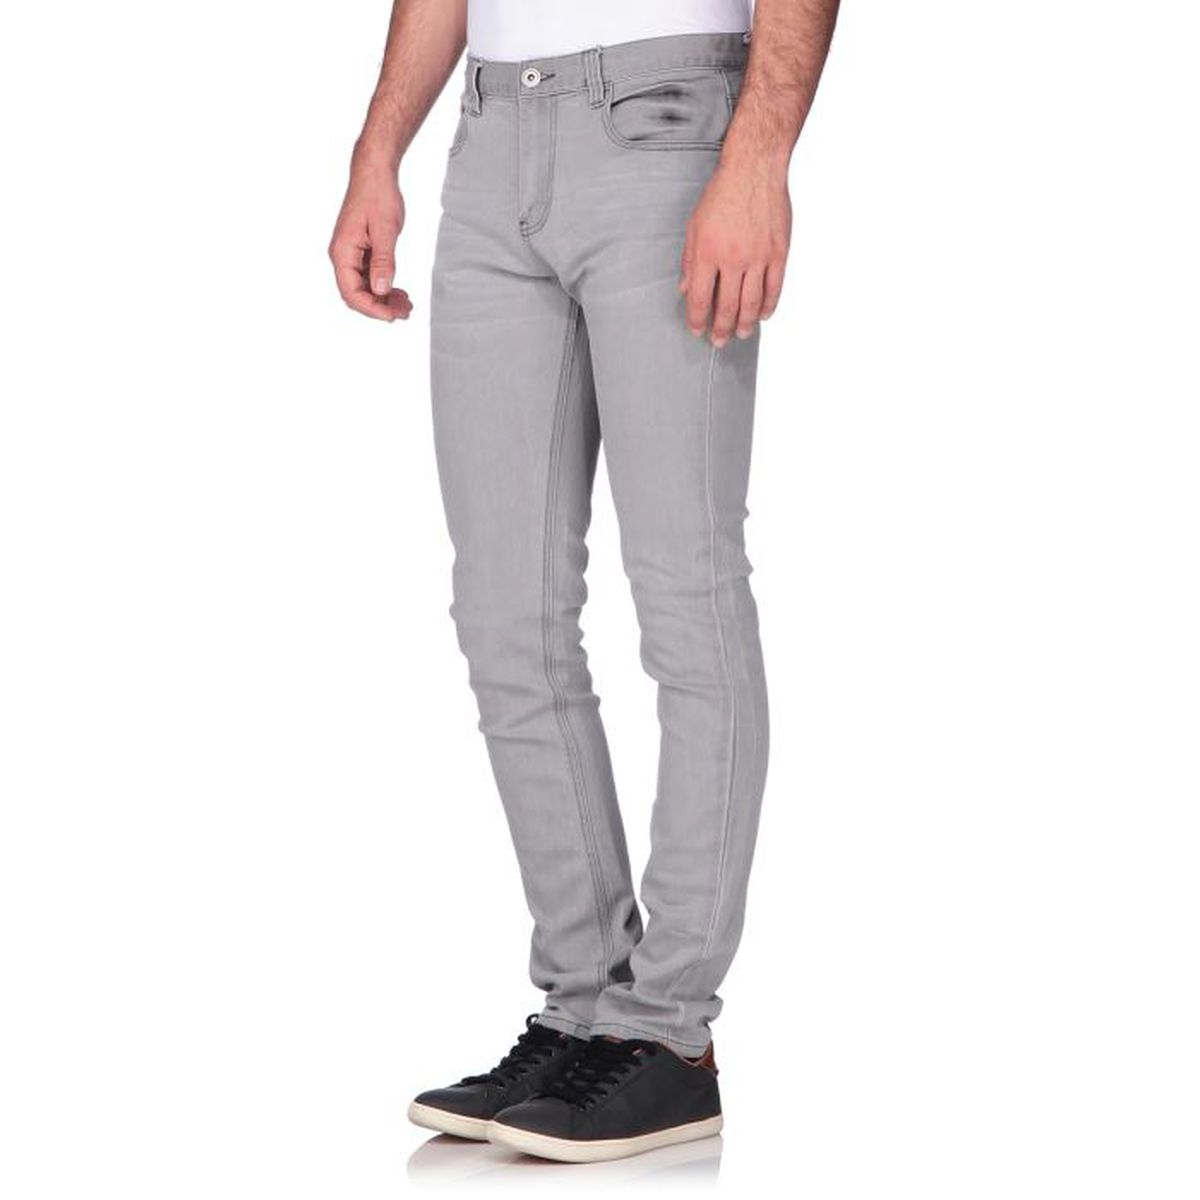 custer jean skinny homme gris achat vente jeans custer. Black Bedroom Furniture Sets. Home Design Ideas